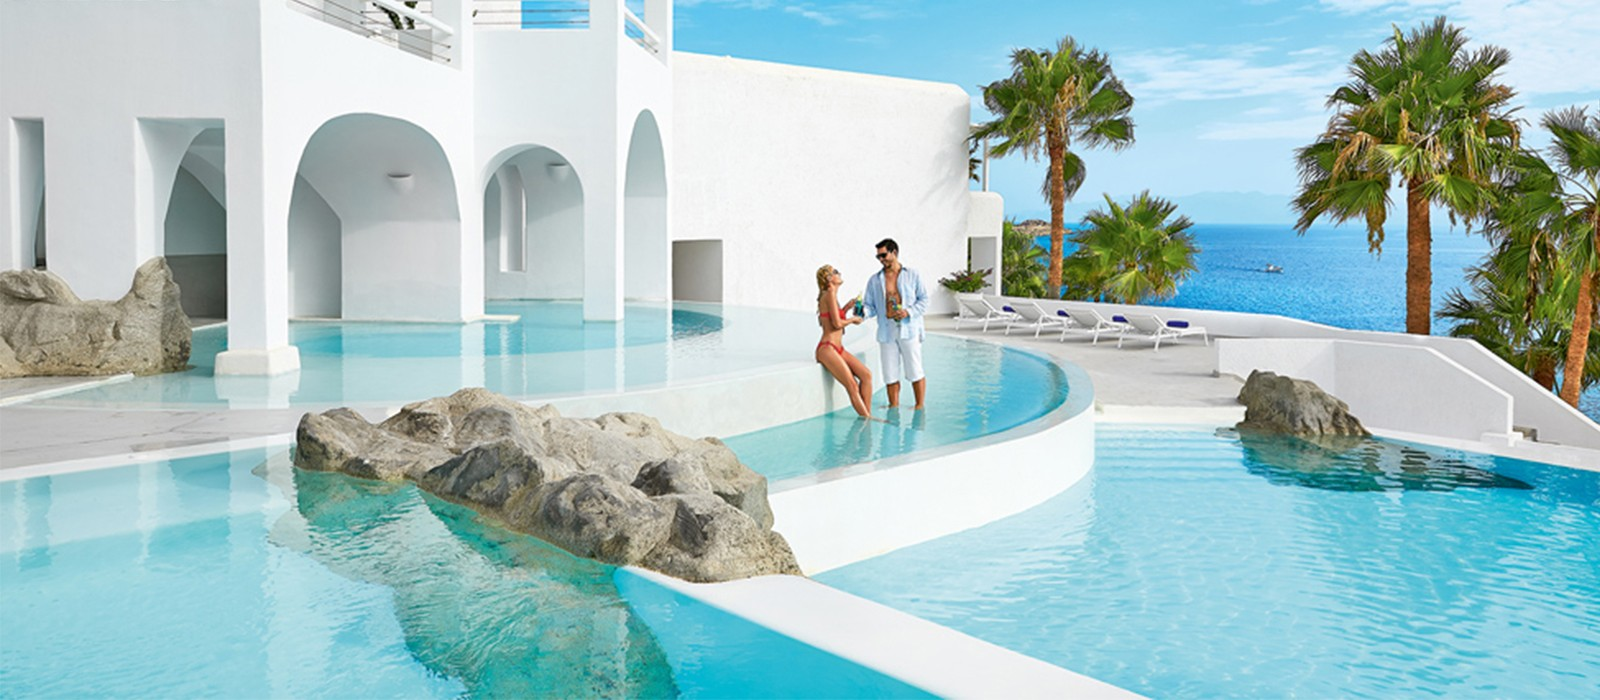 All Inclusive Holiday Destinations